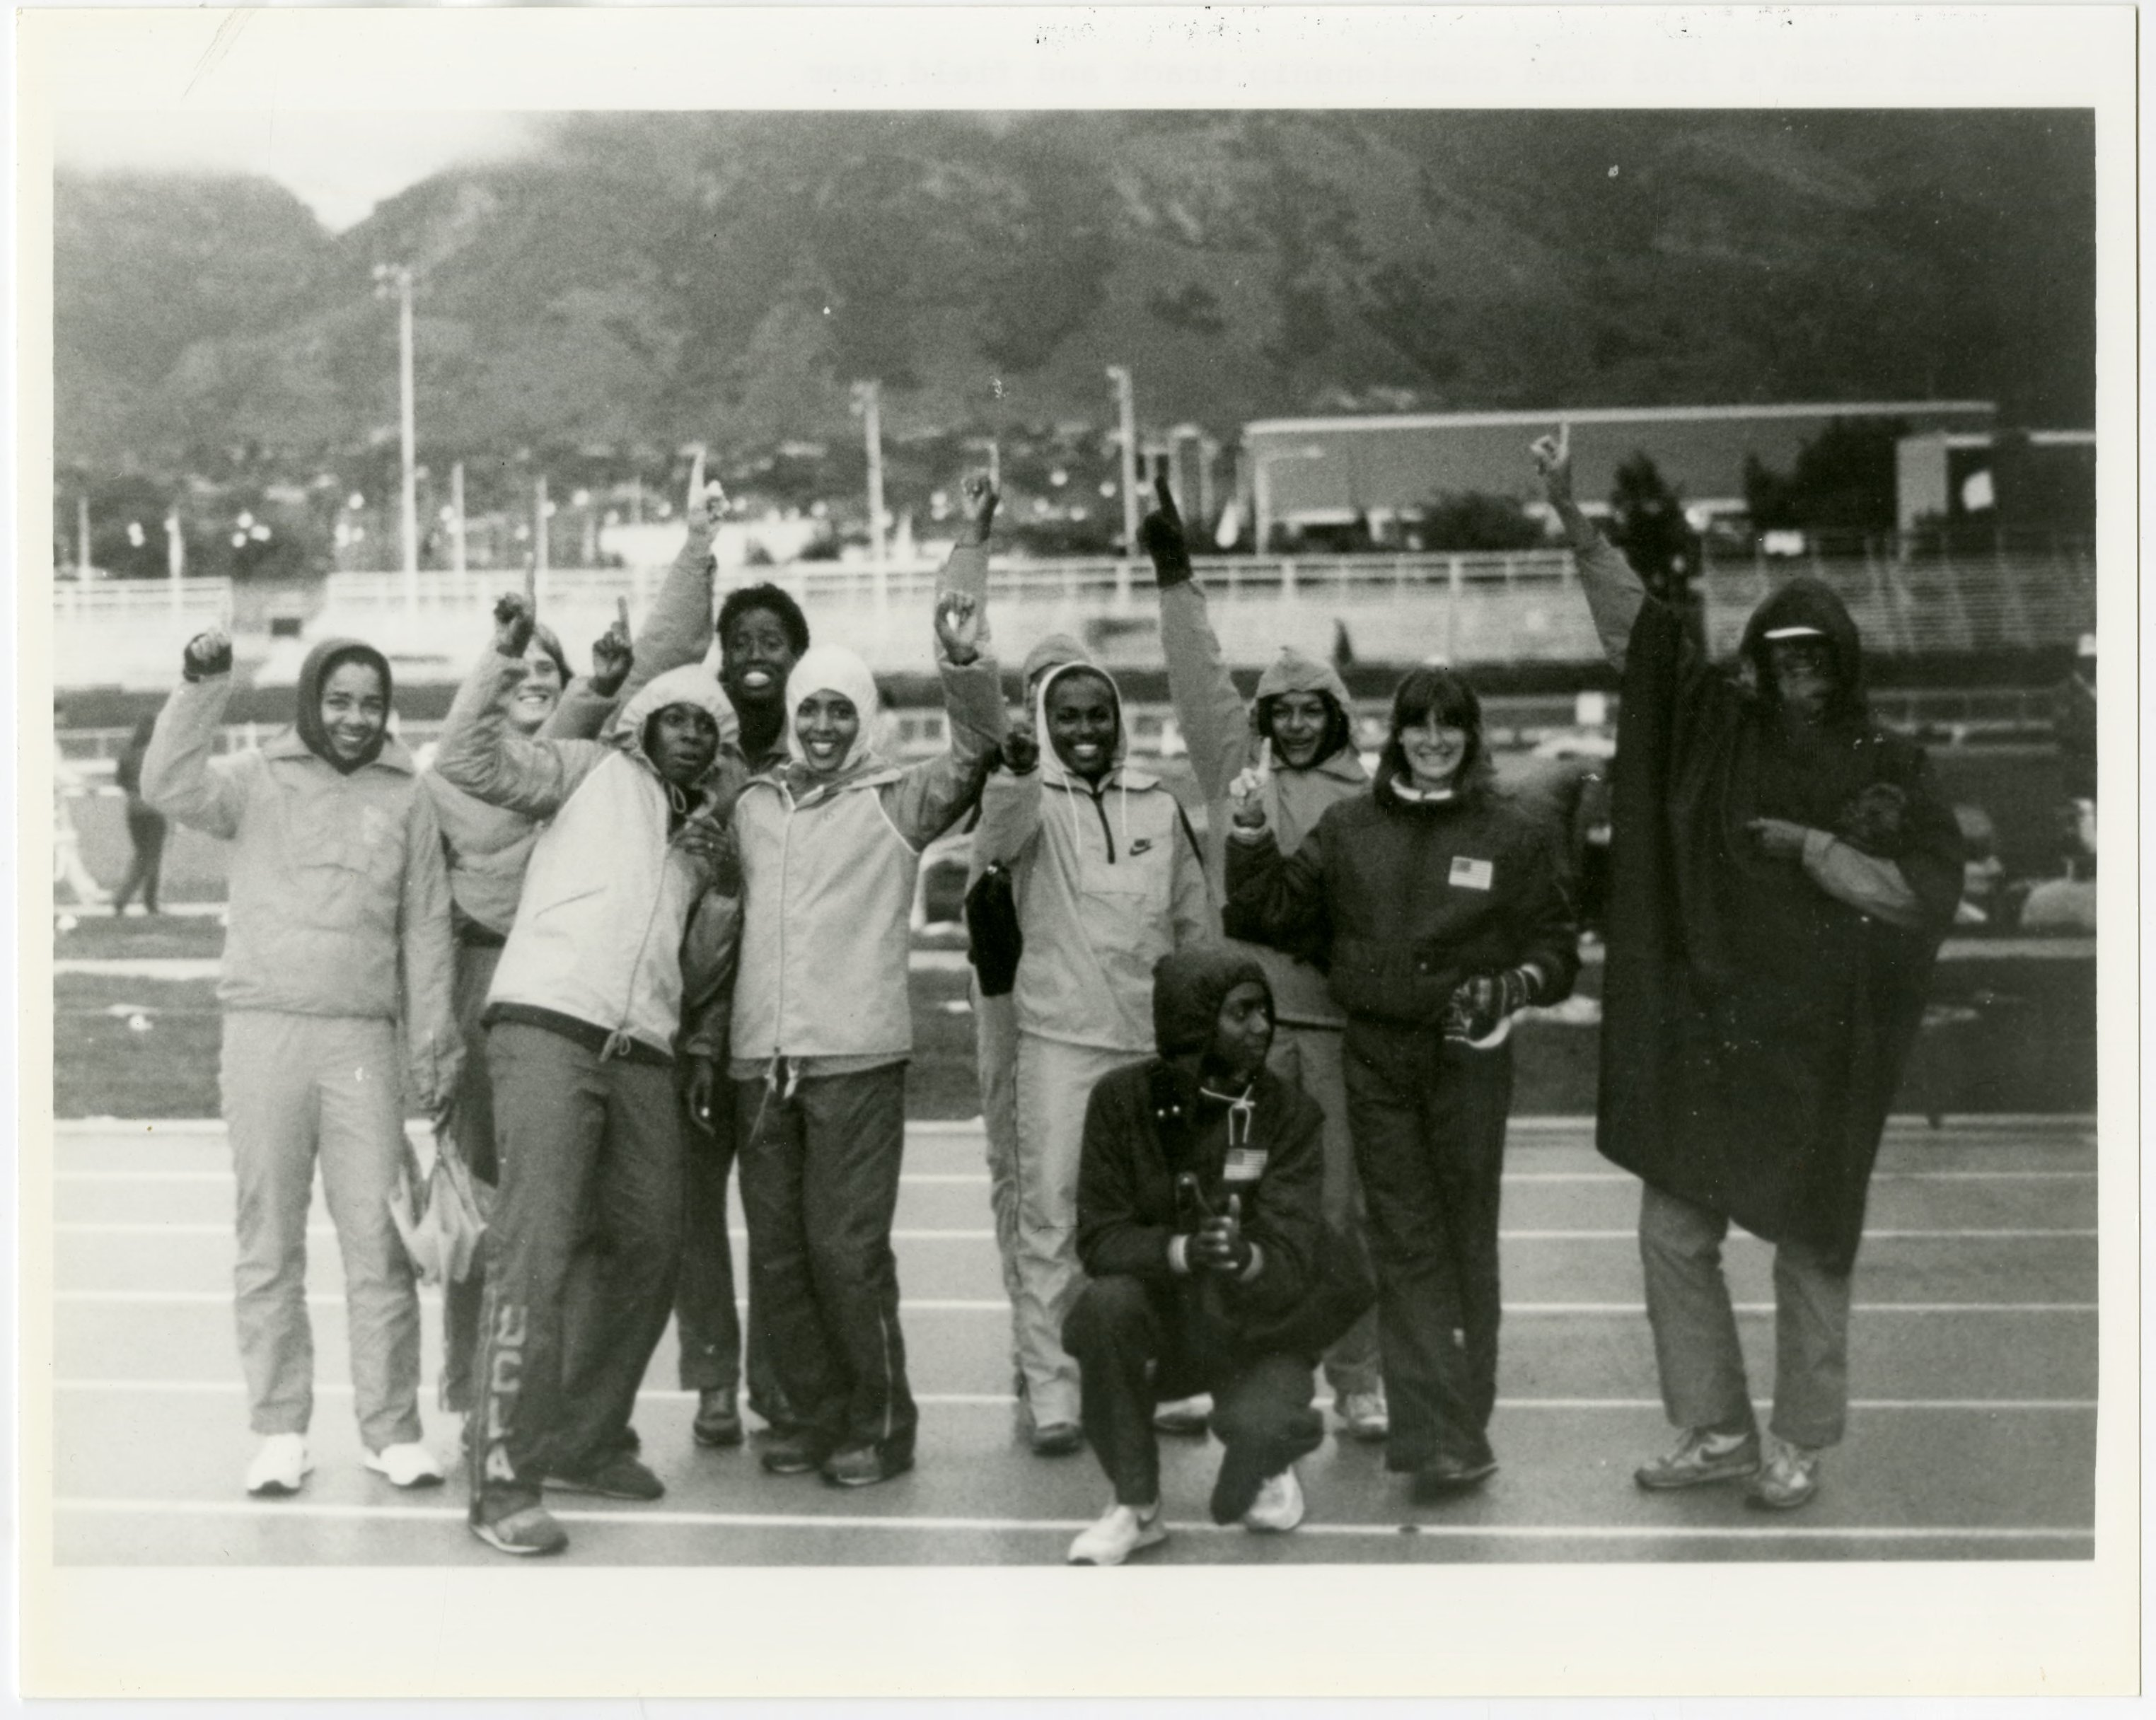 UCLA Library University Archives captures UCLA Bruins Women's Track team  and Florence Griffith (sixth person from the left) shortly after NCAA Division 1 Championship 192, i